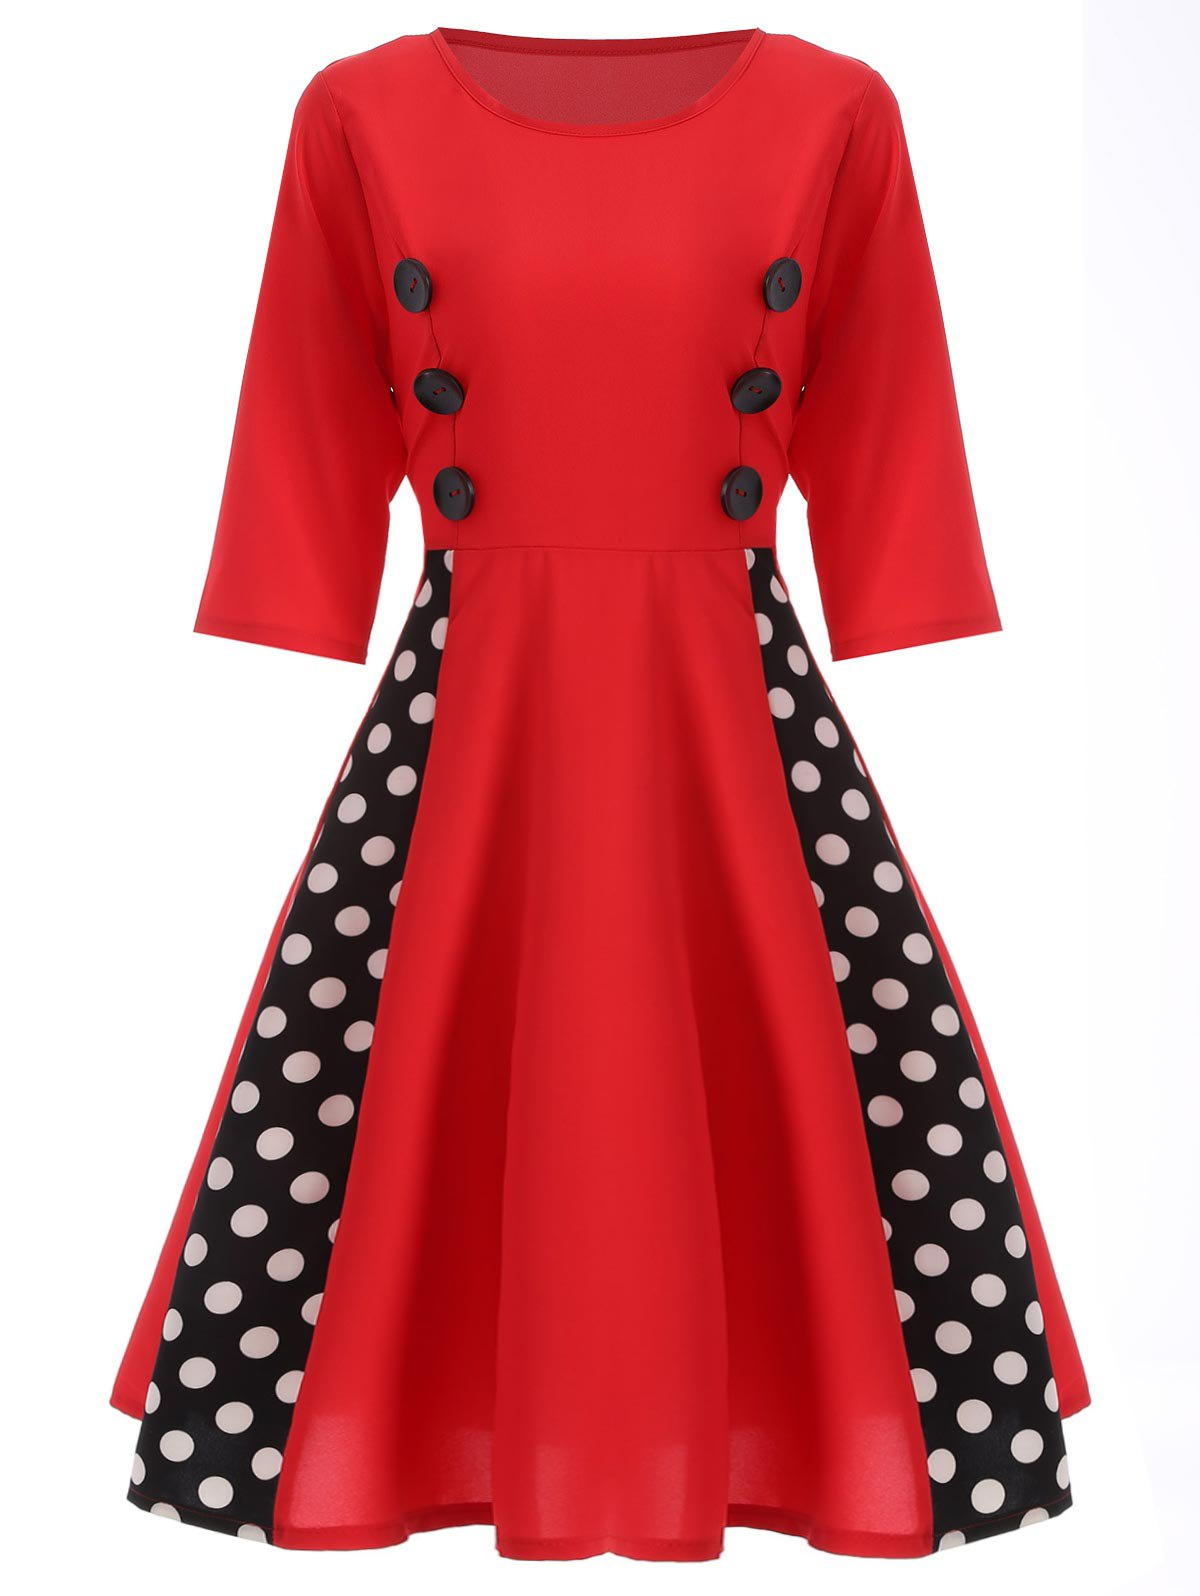 Polka Dot Insert Swing Dress - RED 3XL